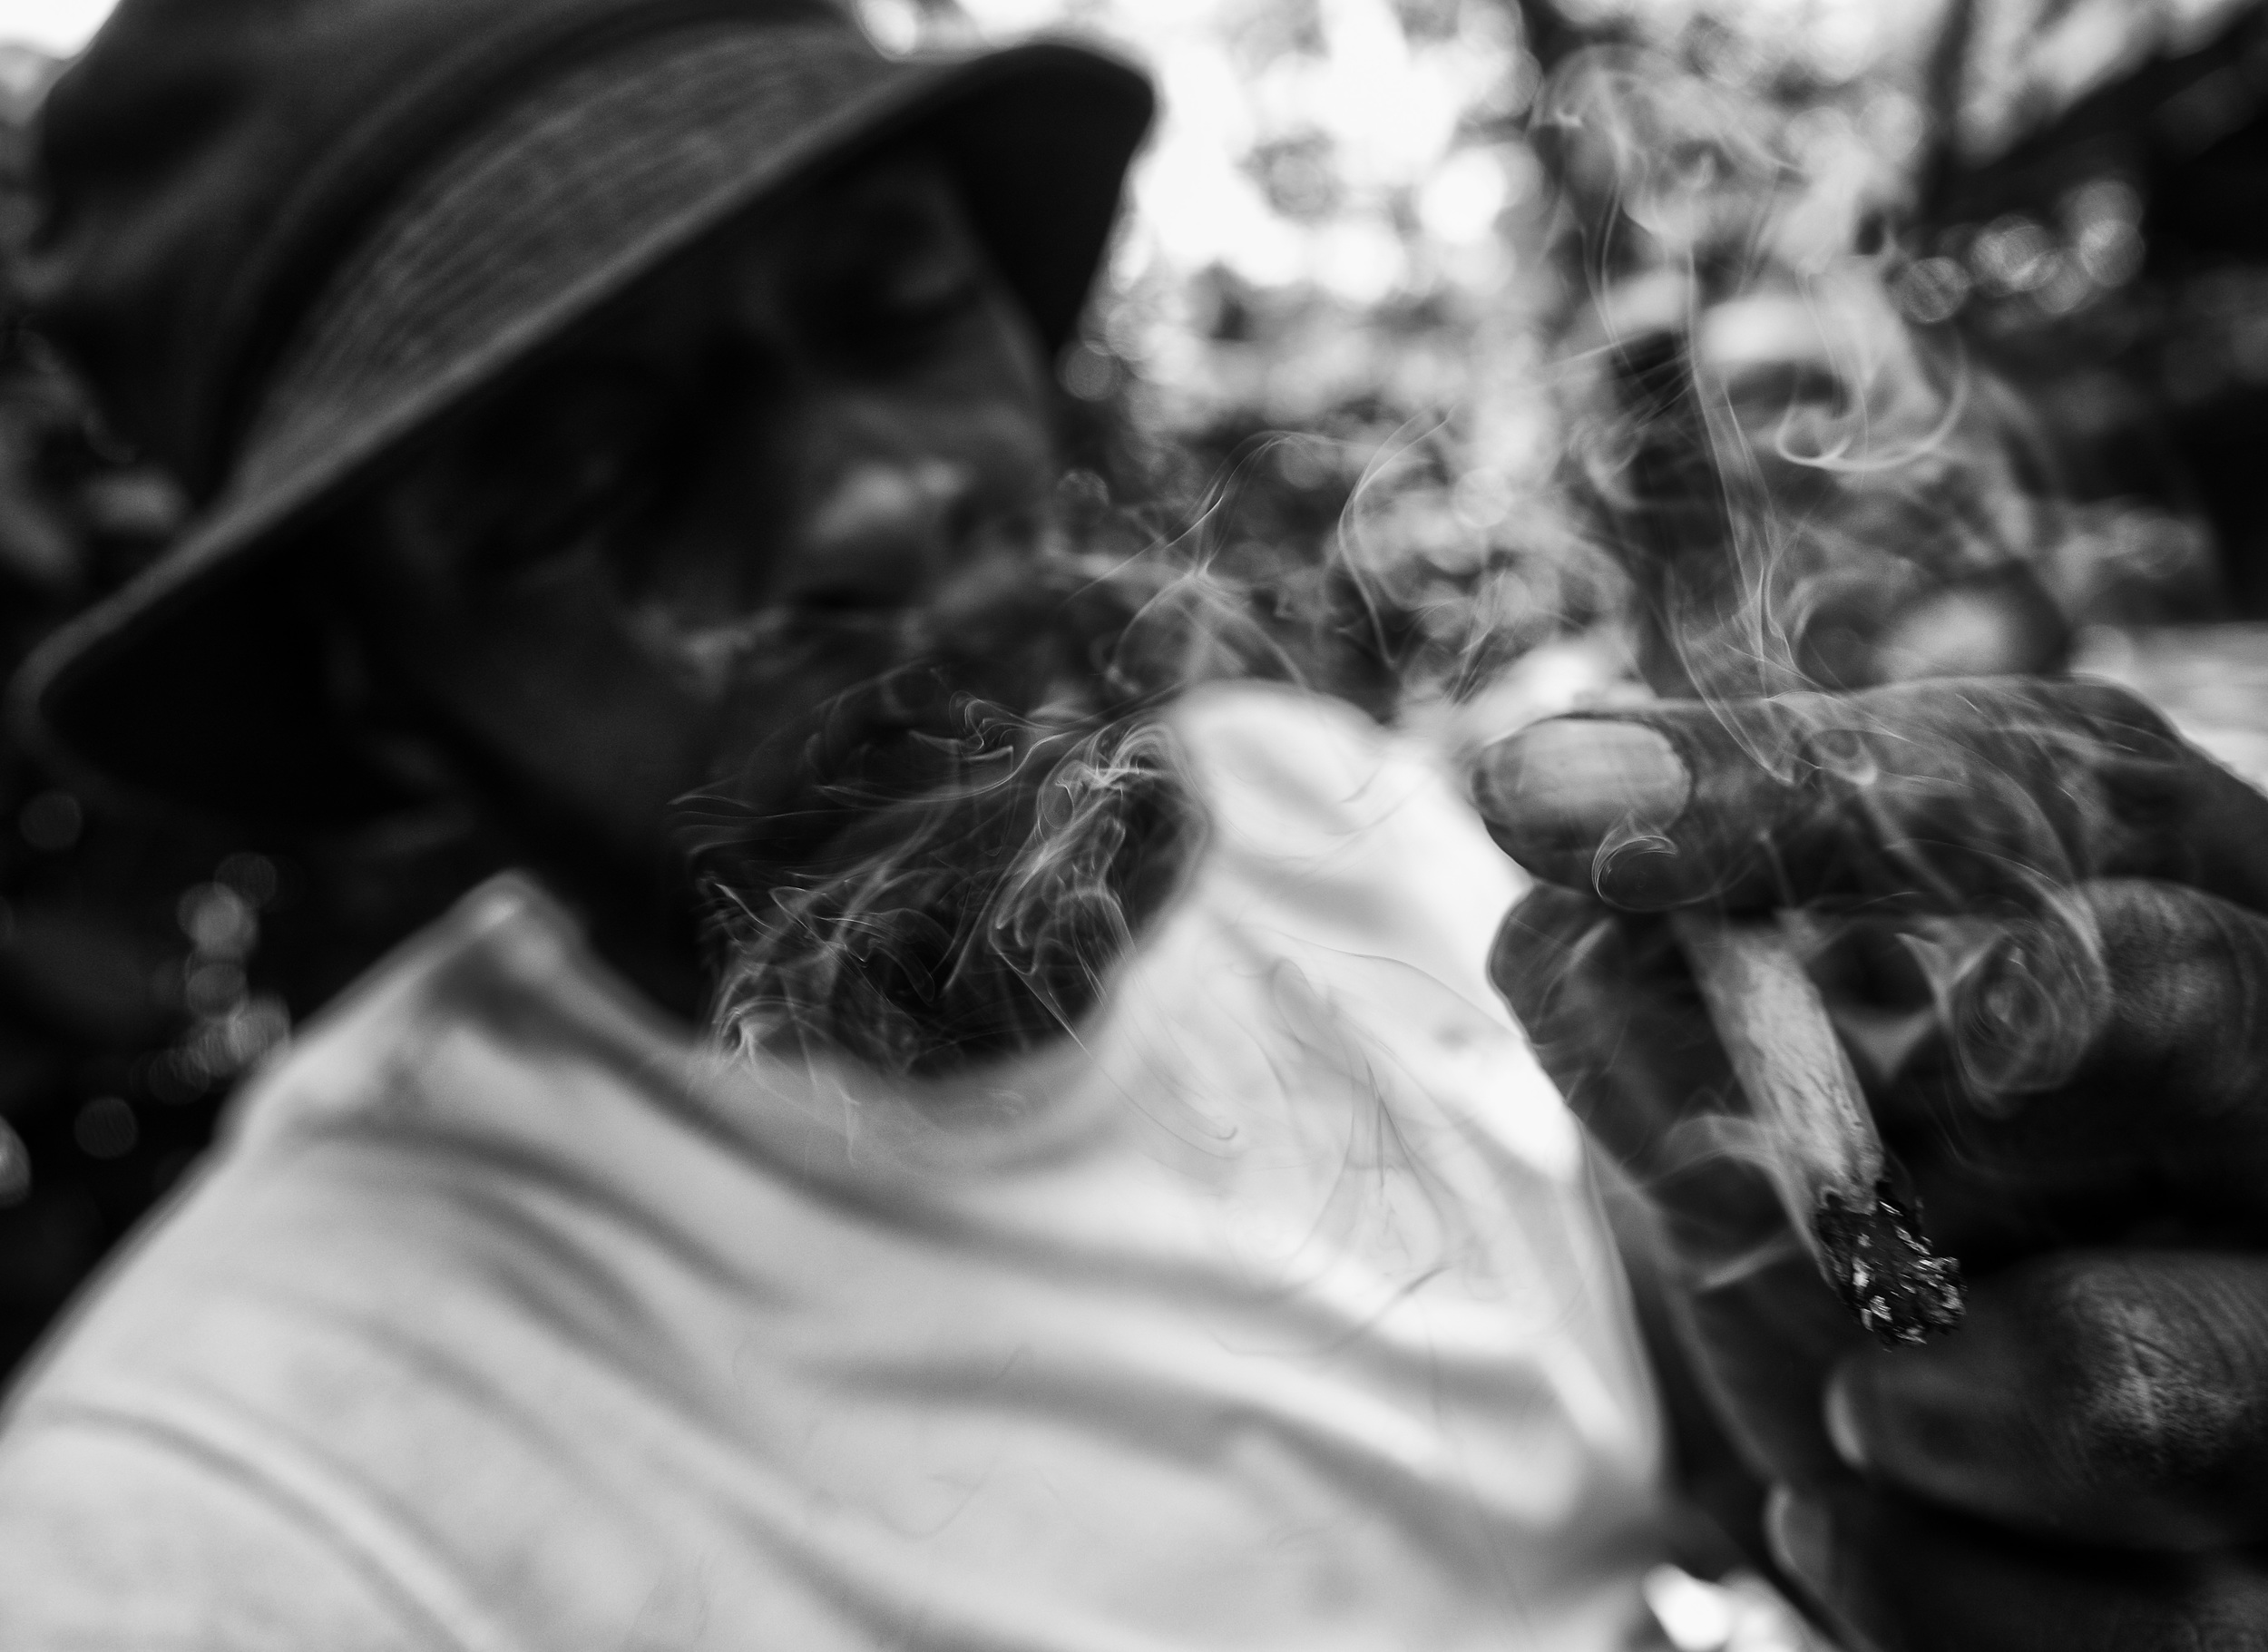 A man smokes synthetic marijuana in Marcus Garvey Park on Friday, September 18, 2015 in New York, N.Y.